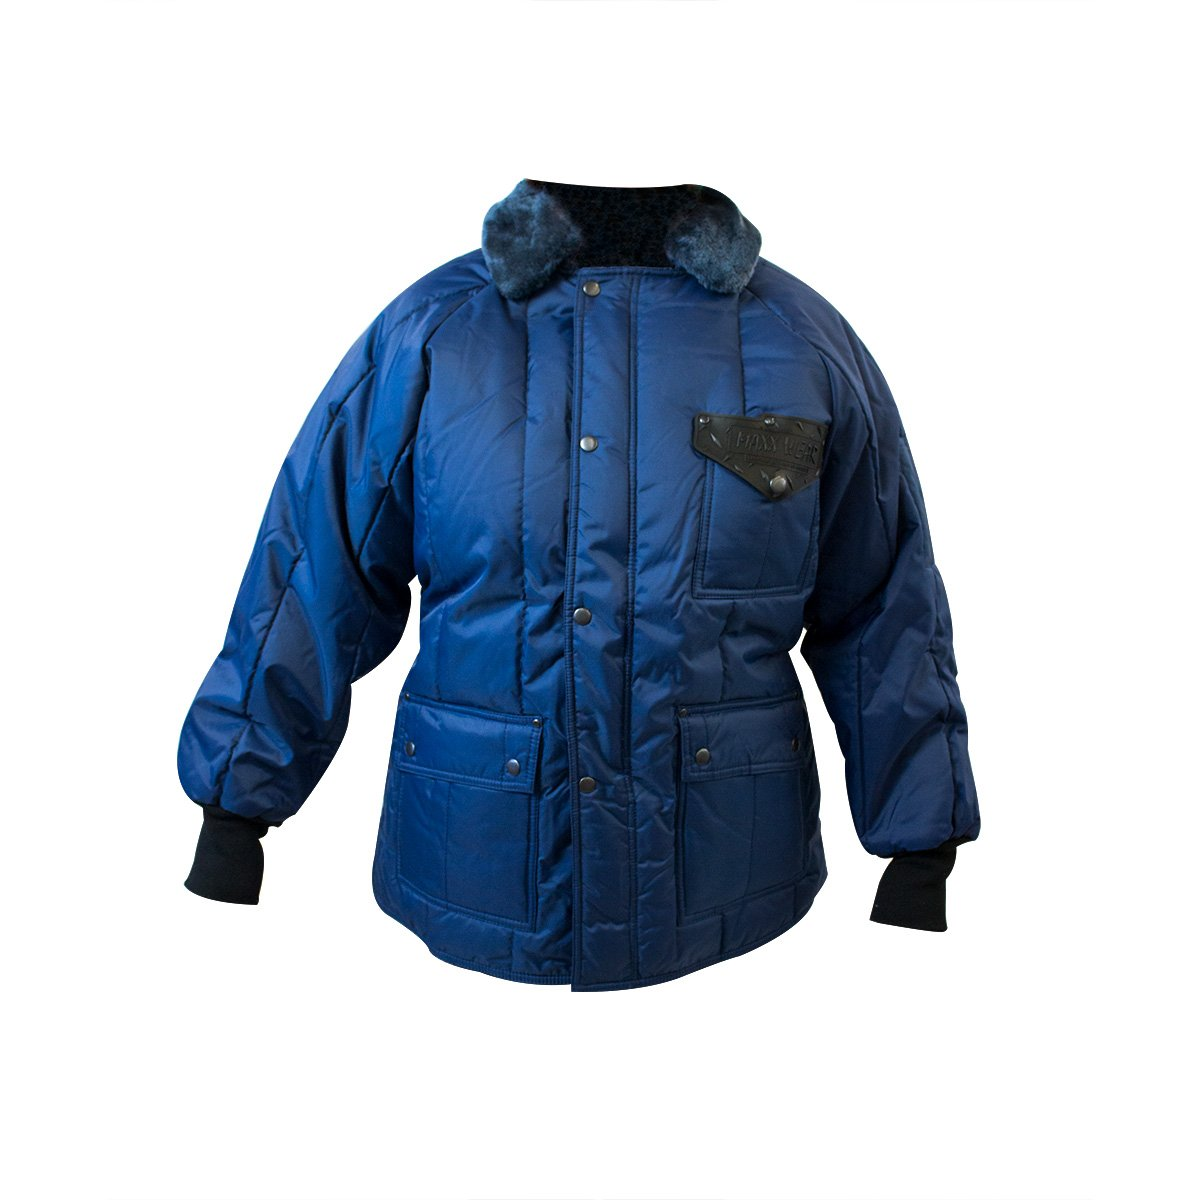 B00SBDHF7Y UltraSource Insulated Freezer Coat, Heavy Weight, Size X-Large 617atq6PspL